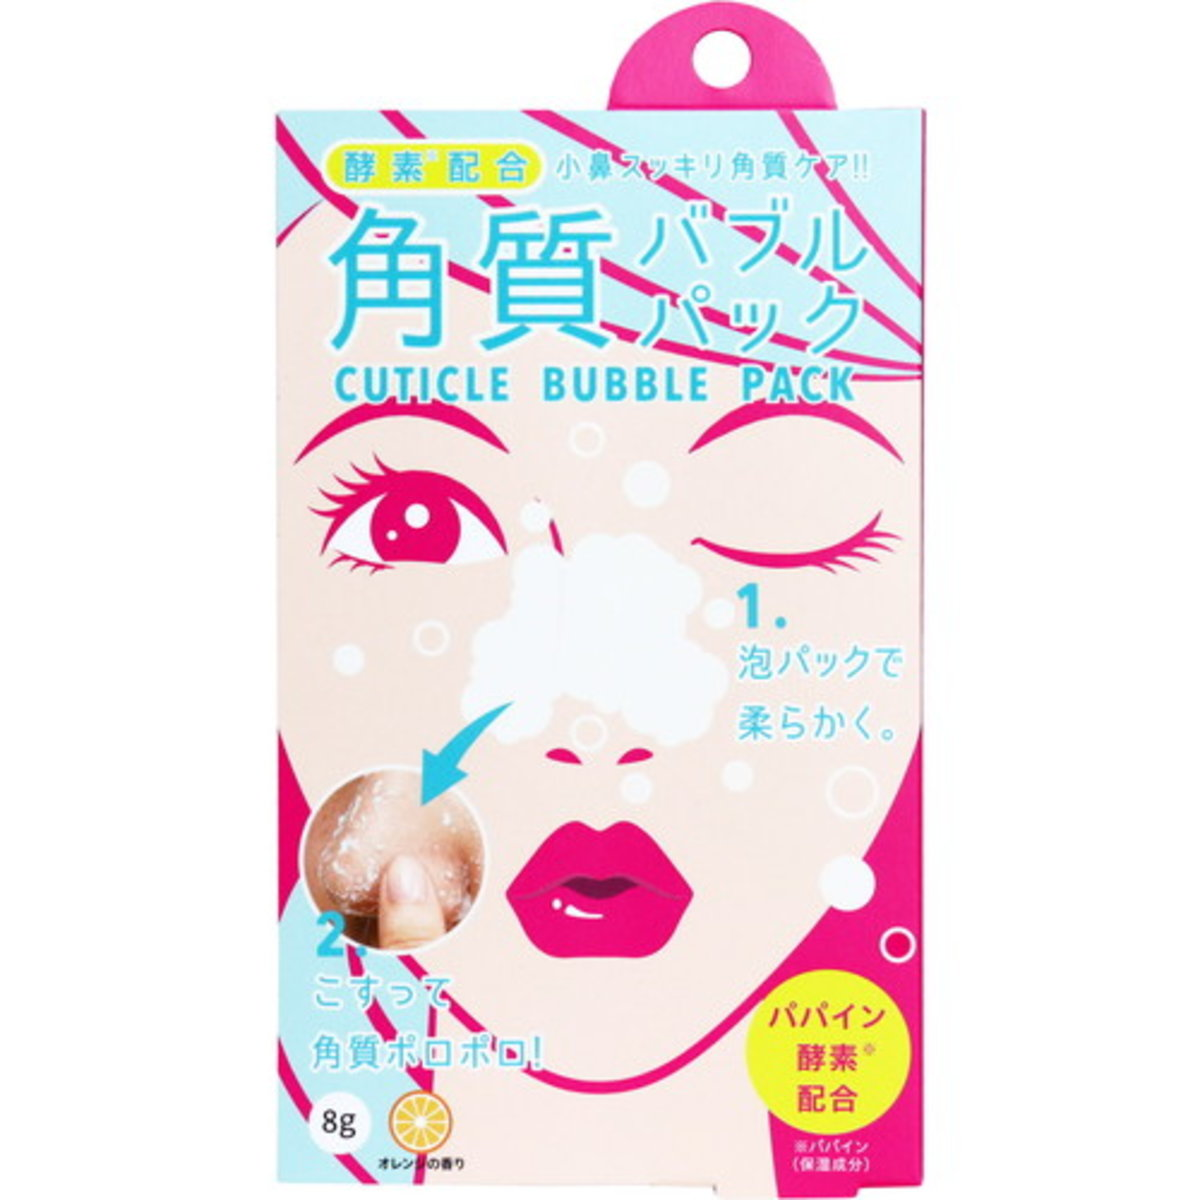 Enzyme formulated peeling cuticle bubble pack 8g (Parallel Imports Product)